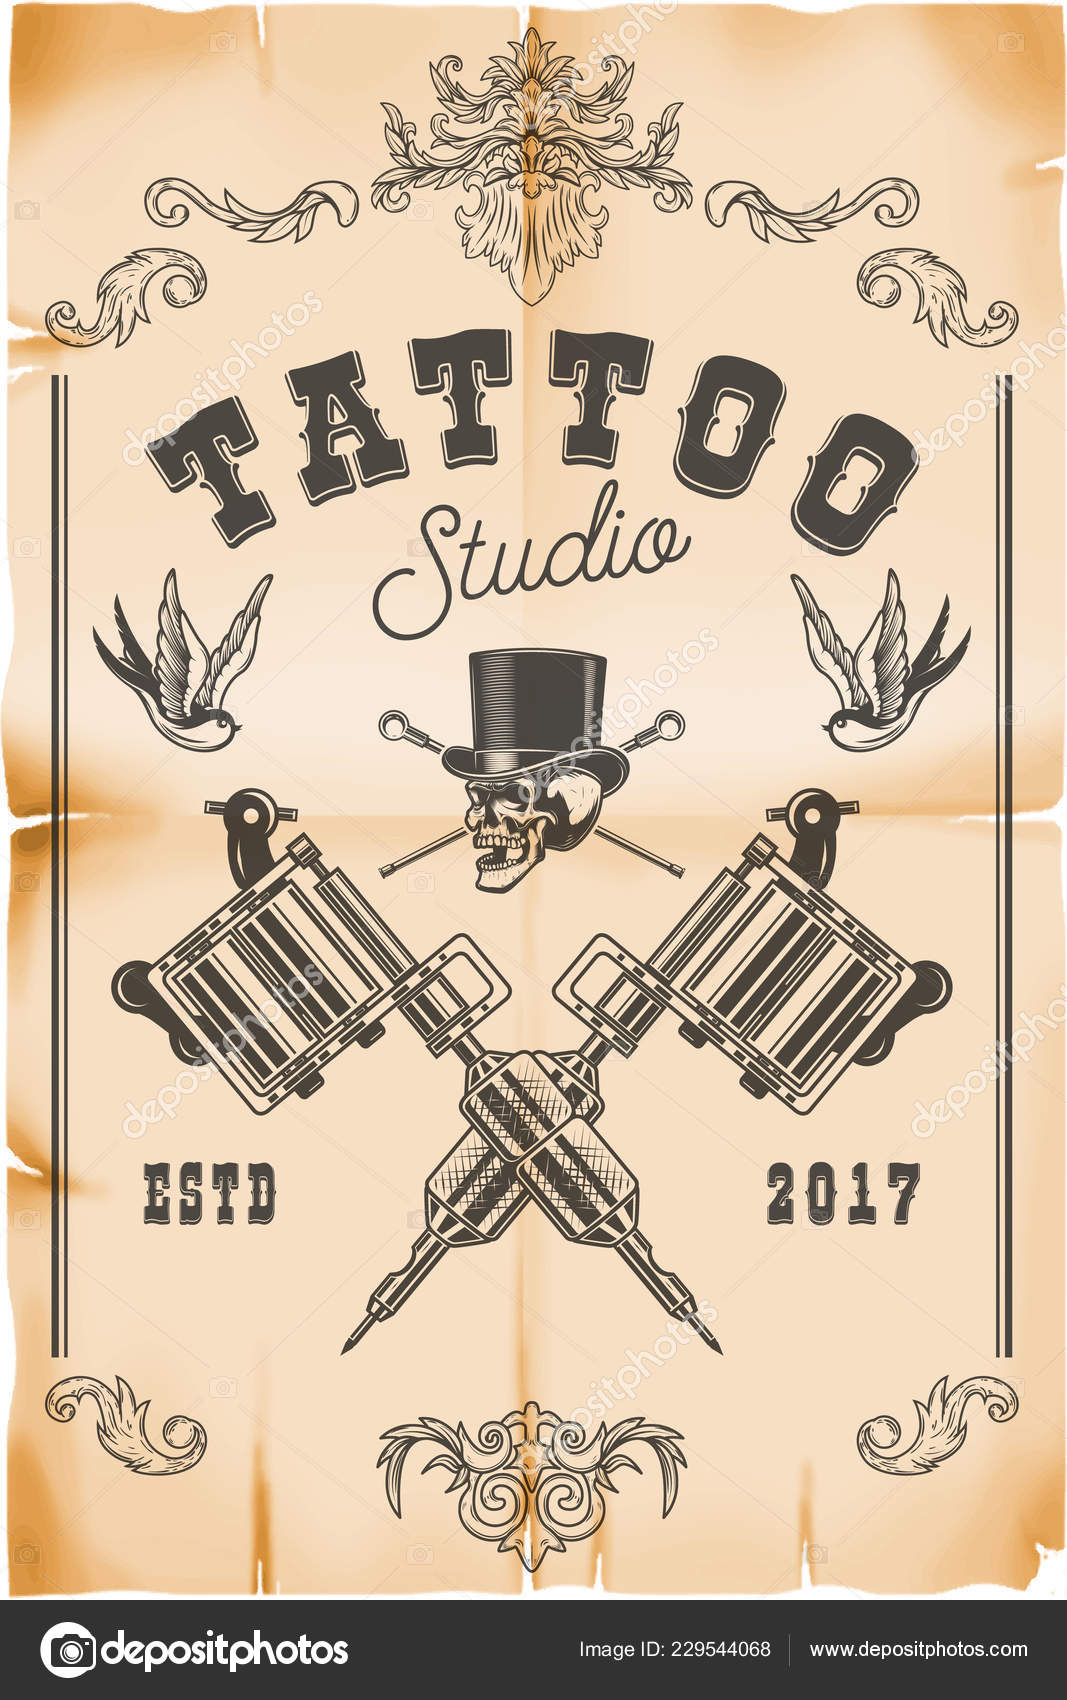 Tattoo Studio Poster Template Skull Crossed Tattoo Machines